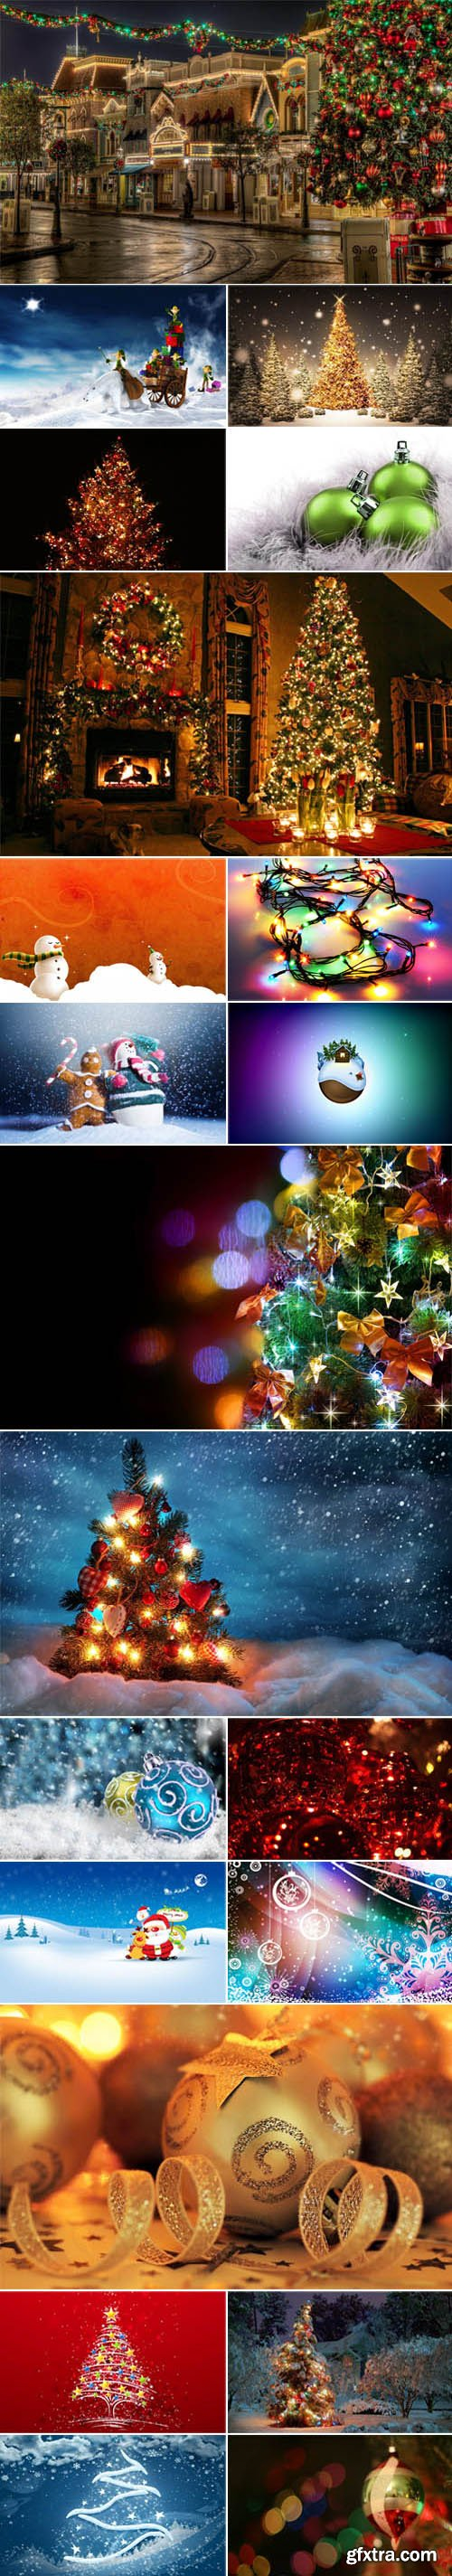 Christmas & New Year Photos Collection 3